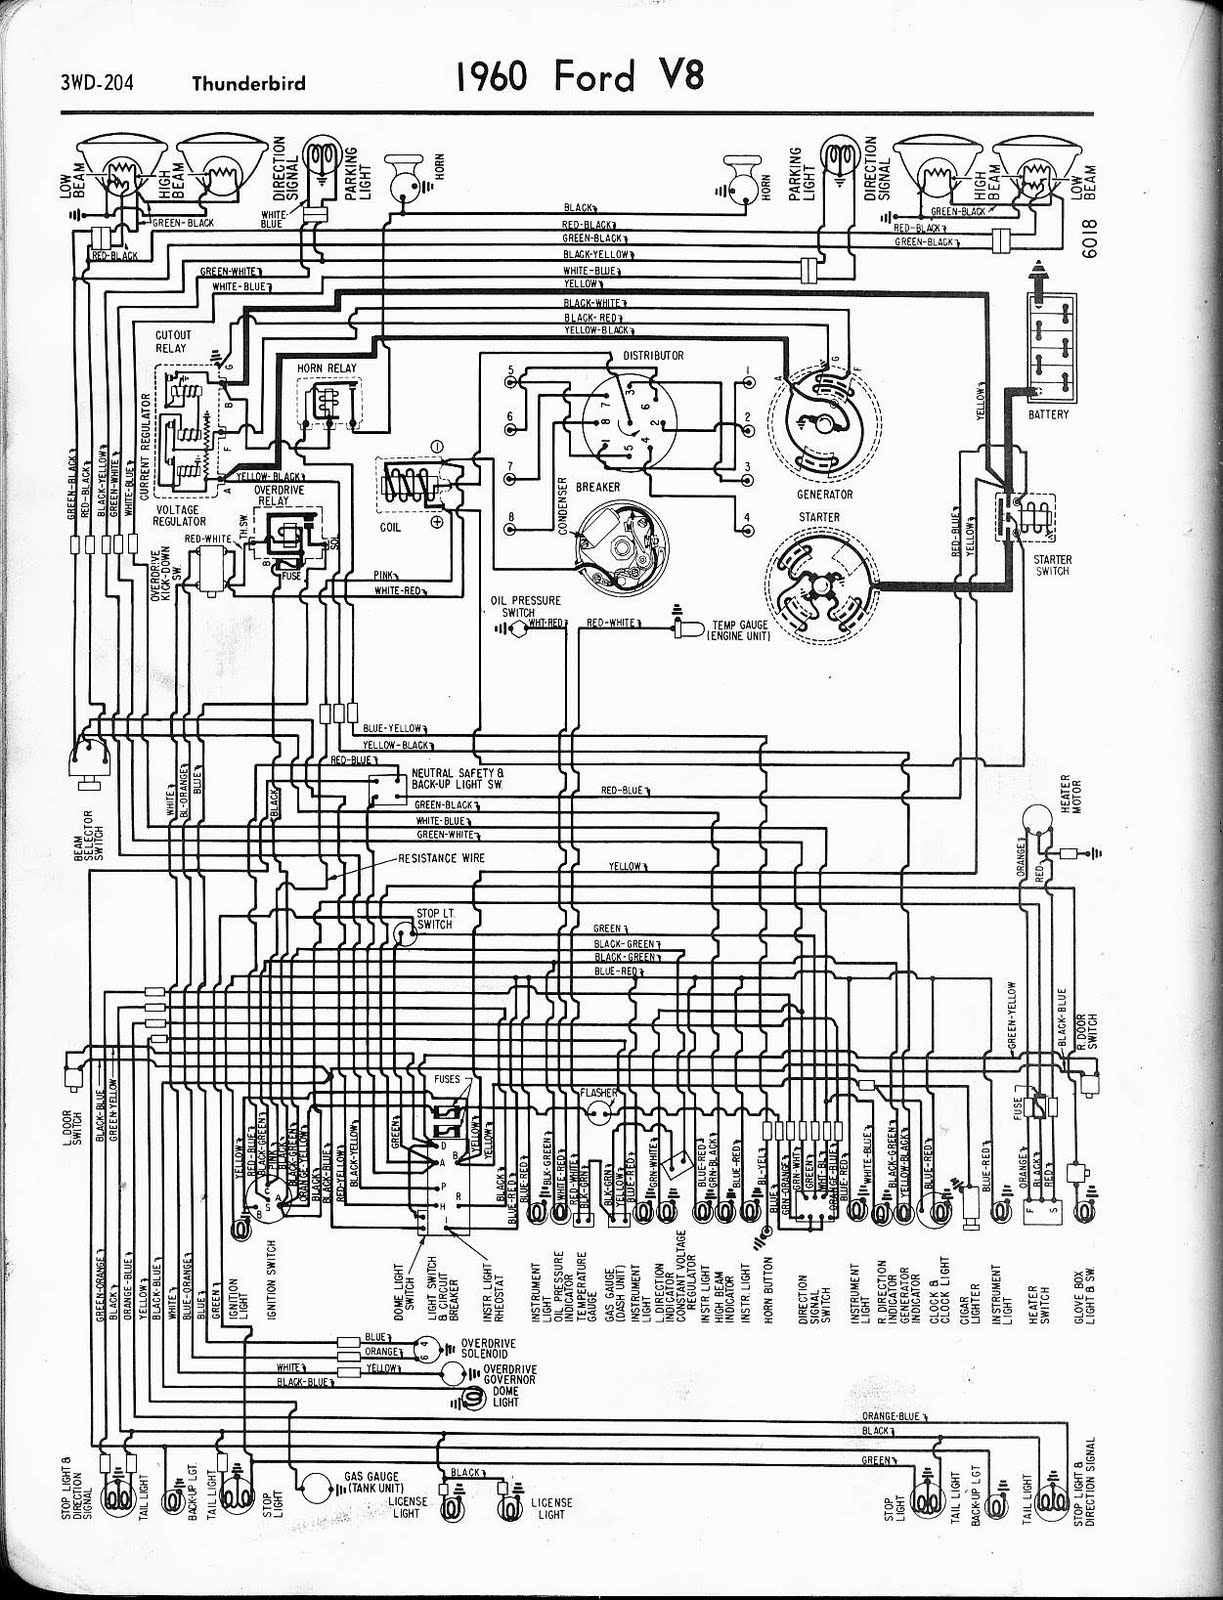 free auto wiring diagram 1960 ford v8 thunderbird wiring diagram rh autowiringdiagram blogspot com 1966 ford thunderbird wiring diagram wiring diagram for 1964 ford thunderbird